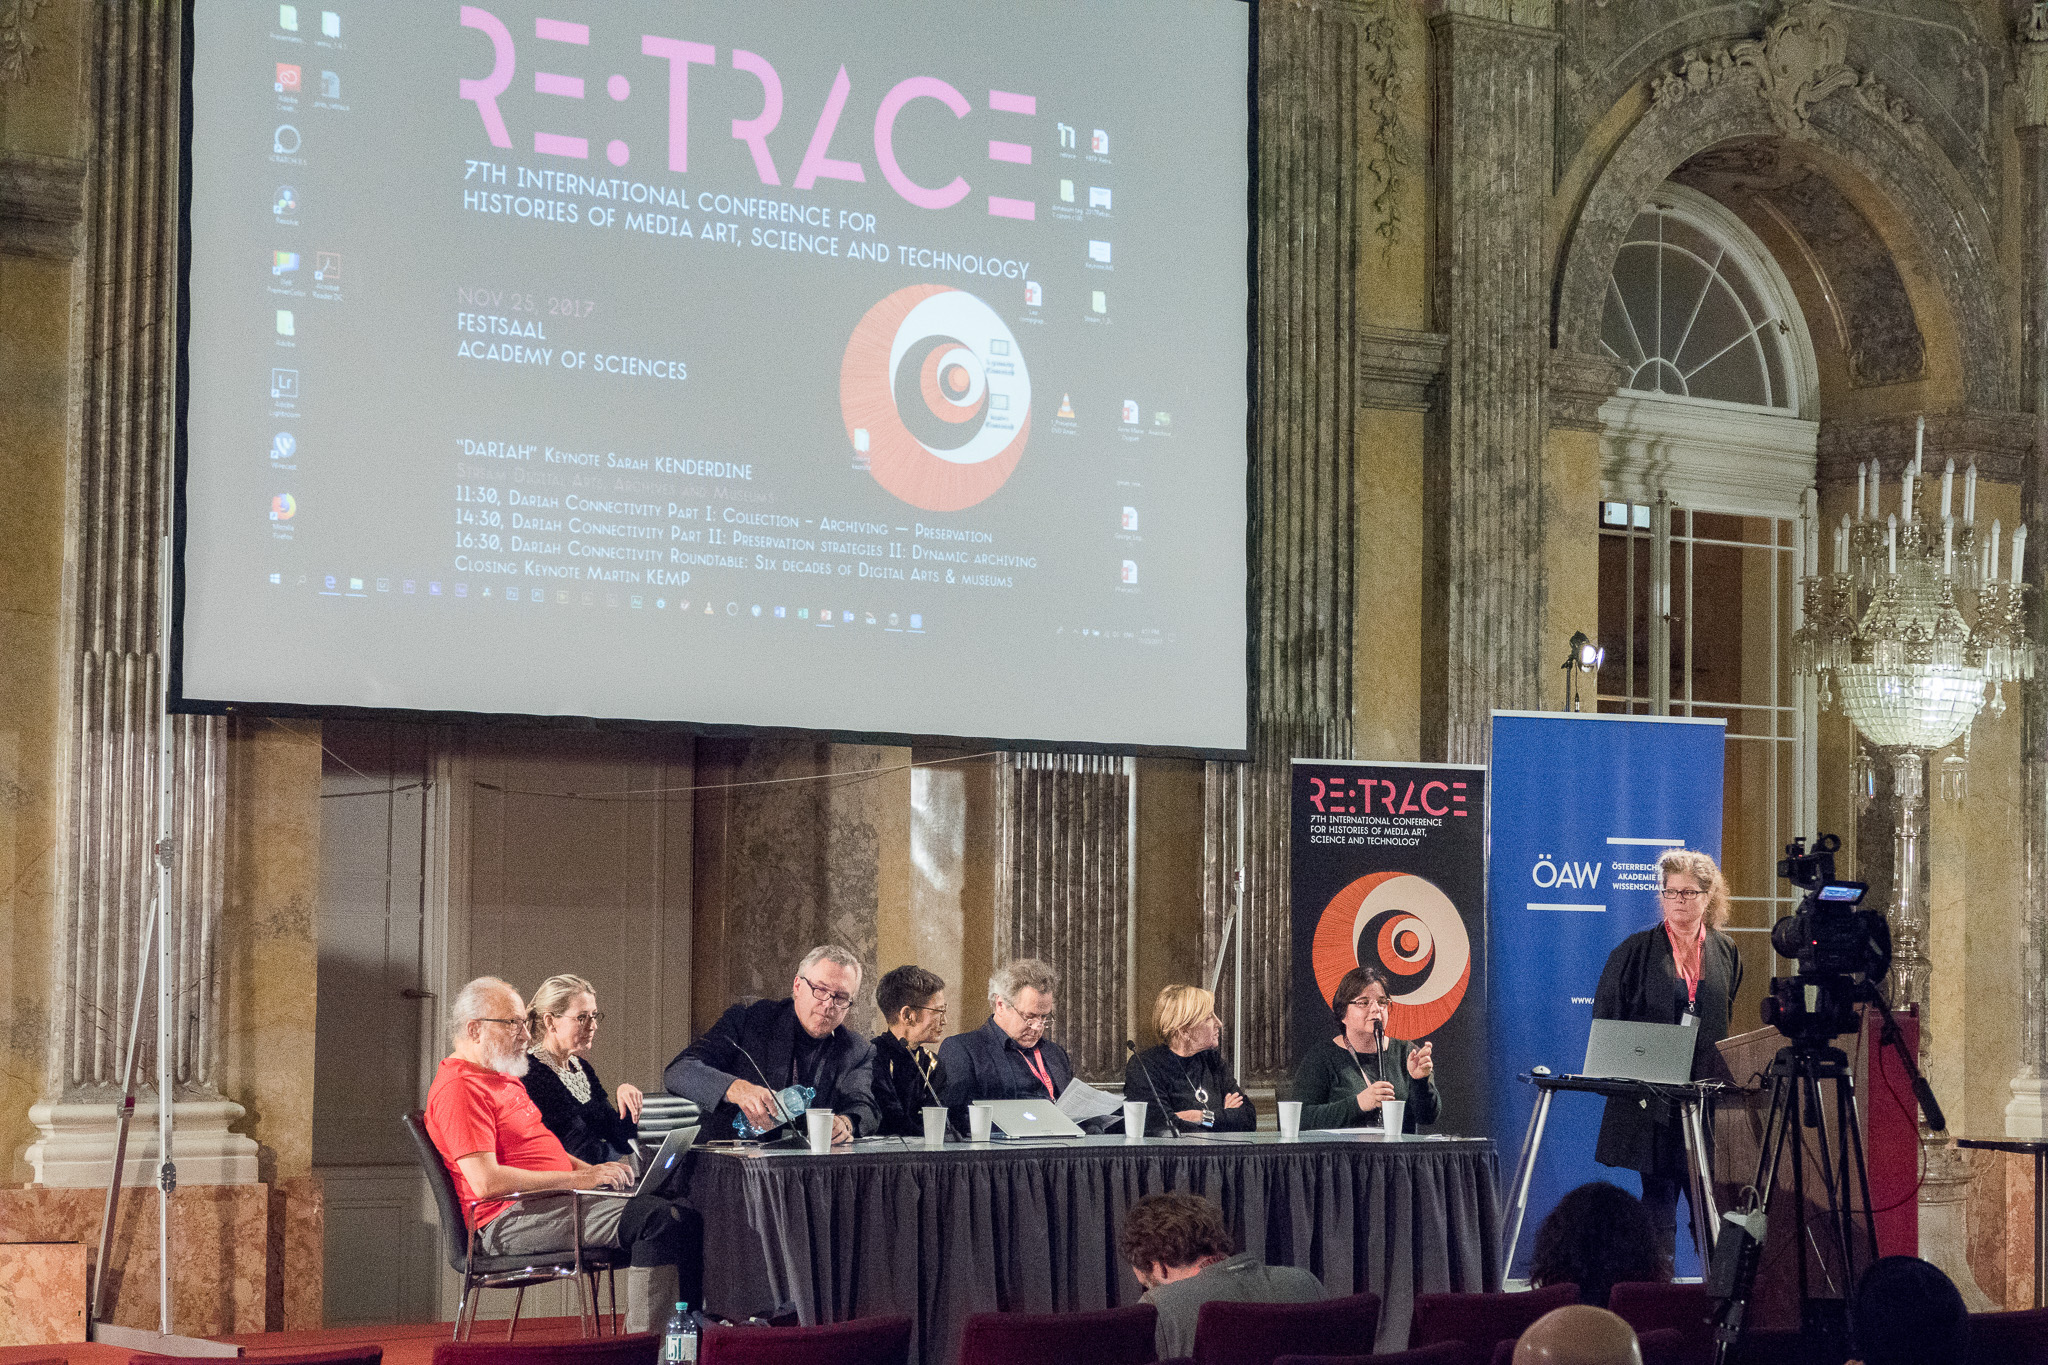 DARIAH Connectivity Roundtable | Re:Trace | Day 3| Austrian Academy of Sciences Vienna